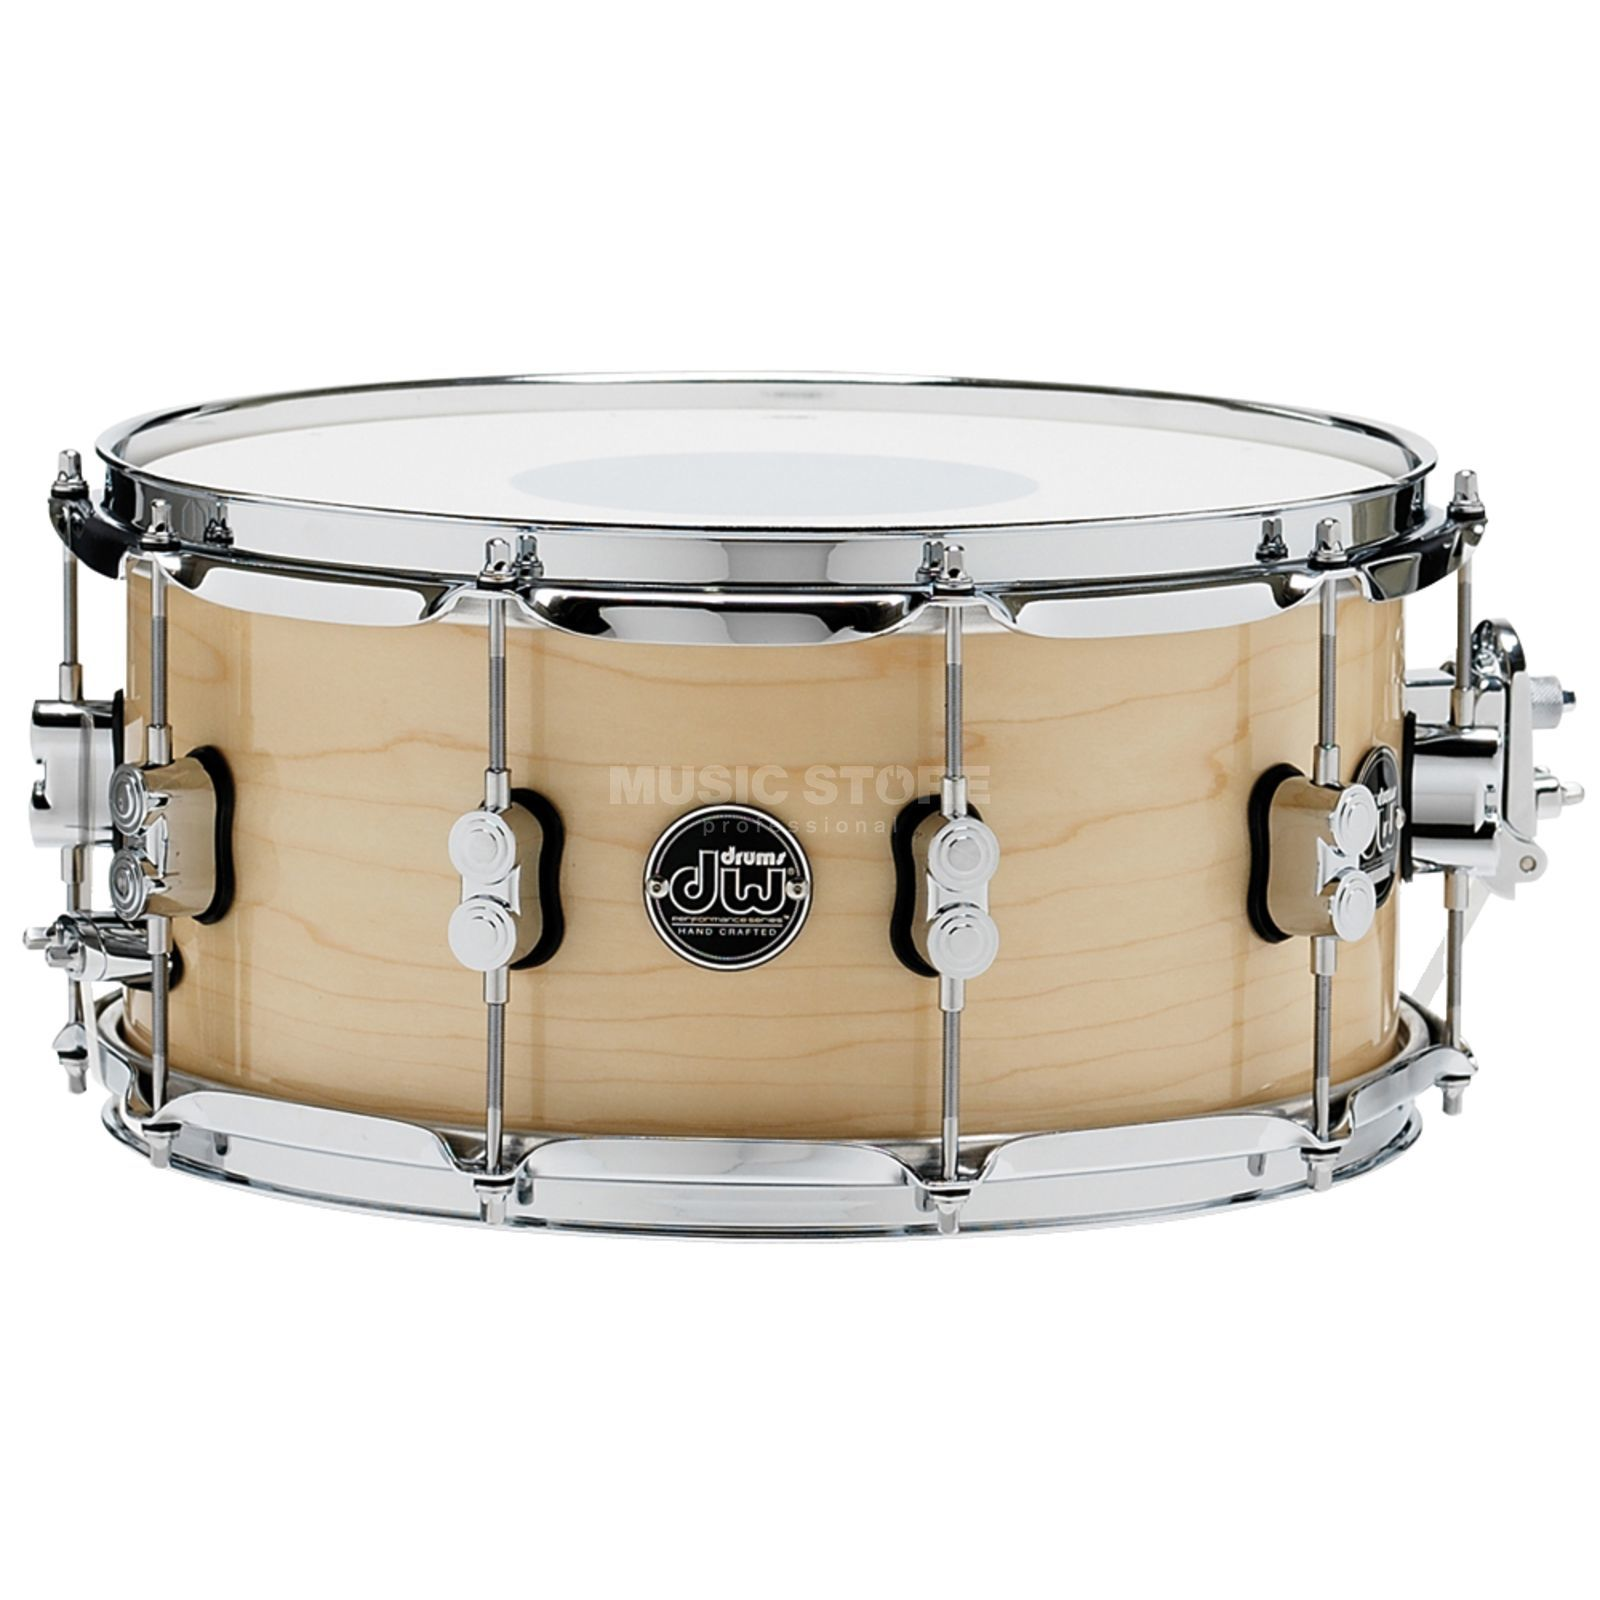 "Drum Workshop Caisse claire Performance 14""x6,5"" Natur Image du produit"